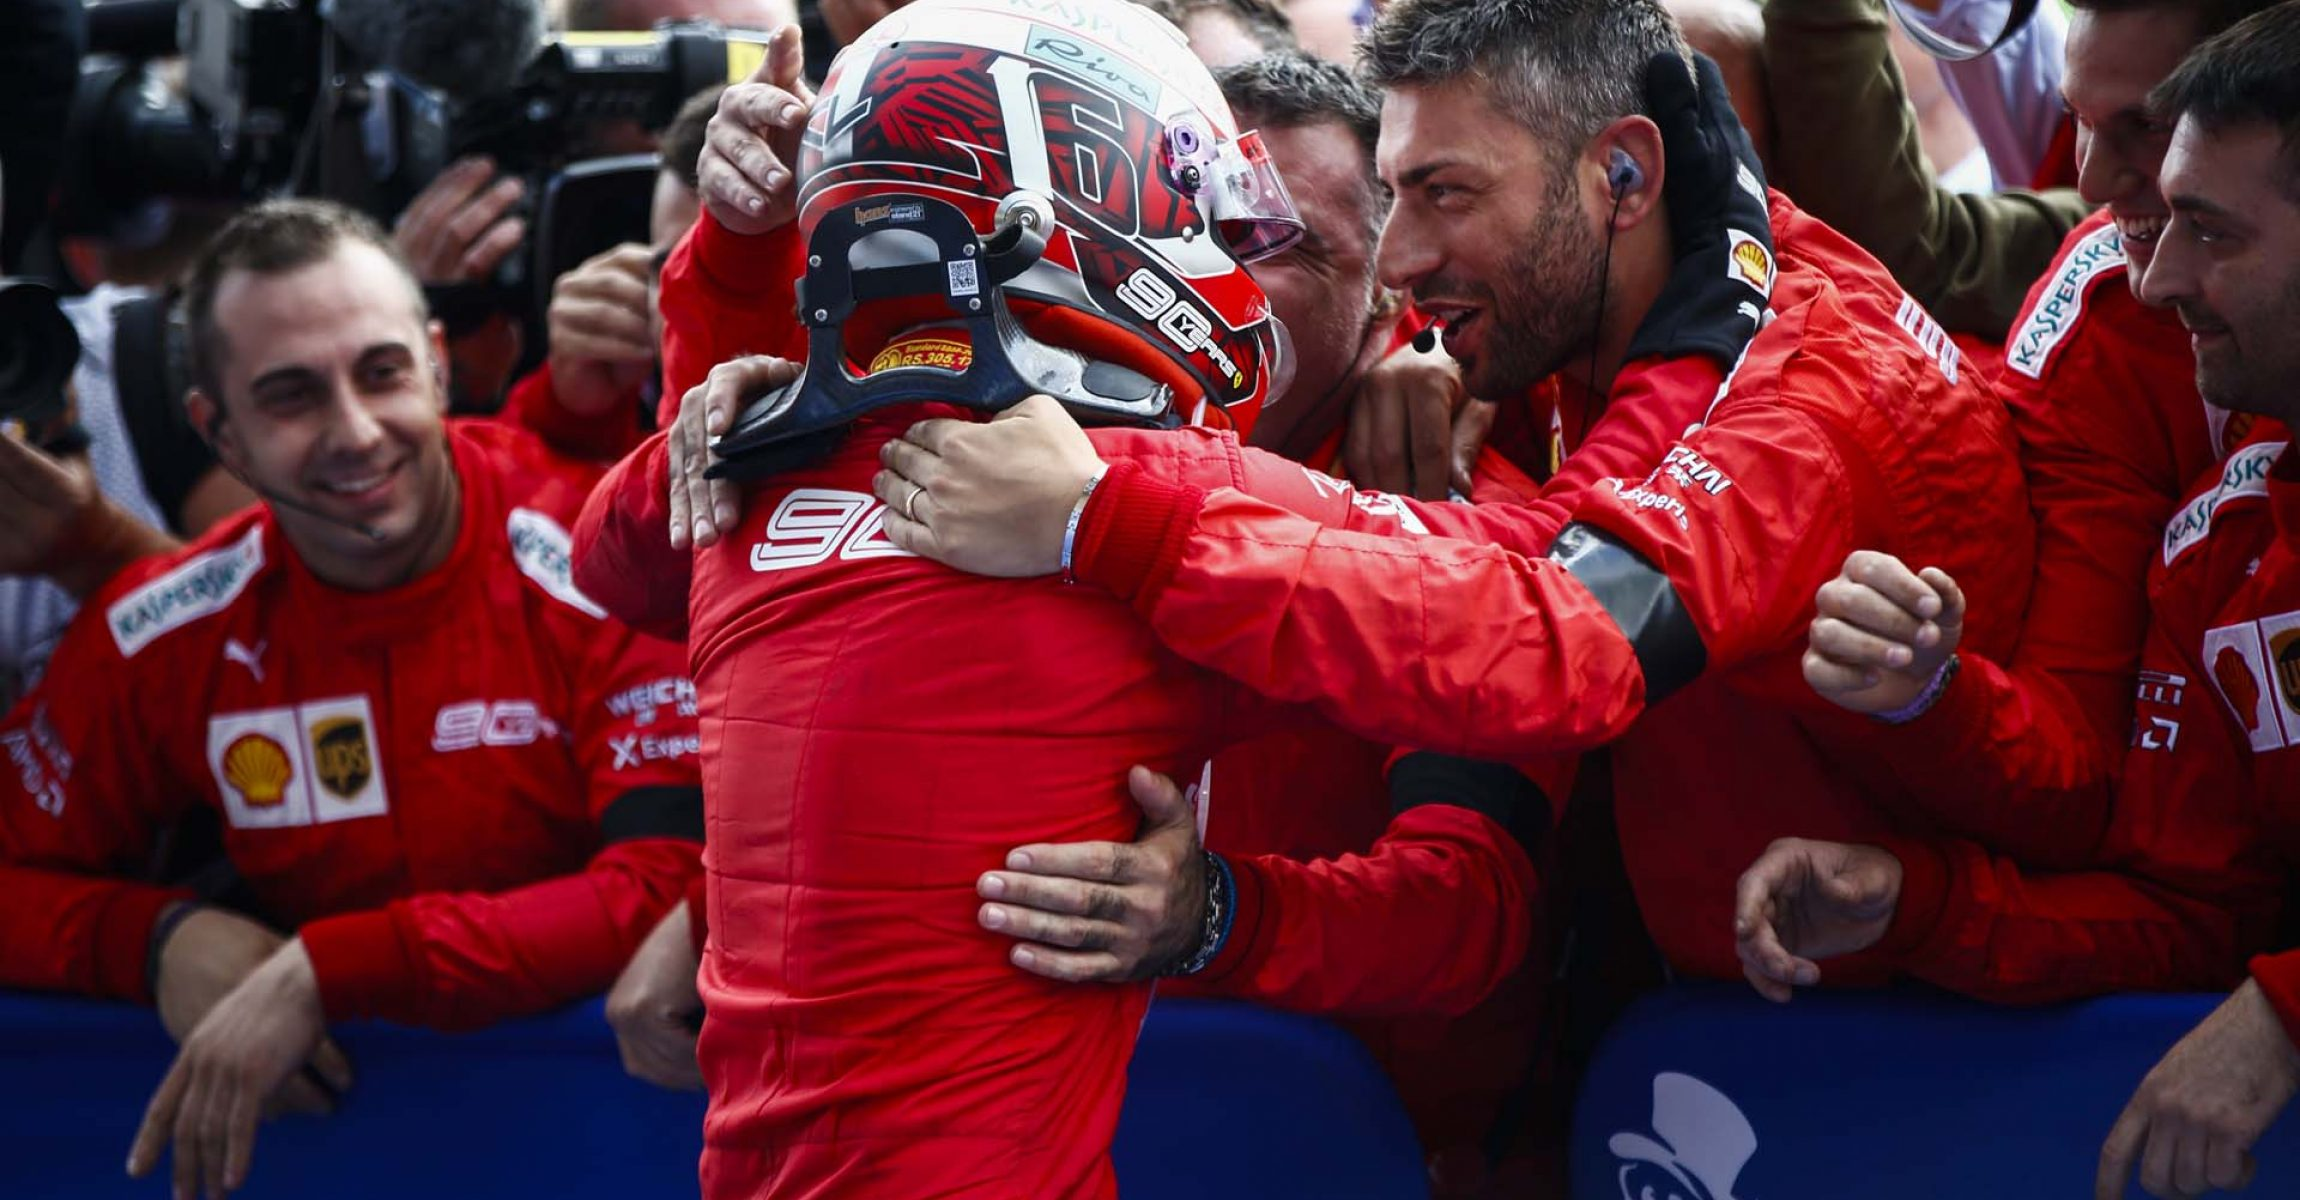 SPA-FRANCORCHAMPS, BELGIUM - SEPTEMBER 01: Charles Leclerc, Ferrari, celebrates victory in parc ferme during the Belgian GP at Spa-Francorchamps on September 01, 2019 in Spa-Francorchamps, Belgium. (Photo by Andy Hone / LAT Images)